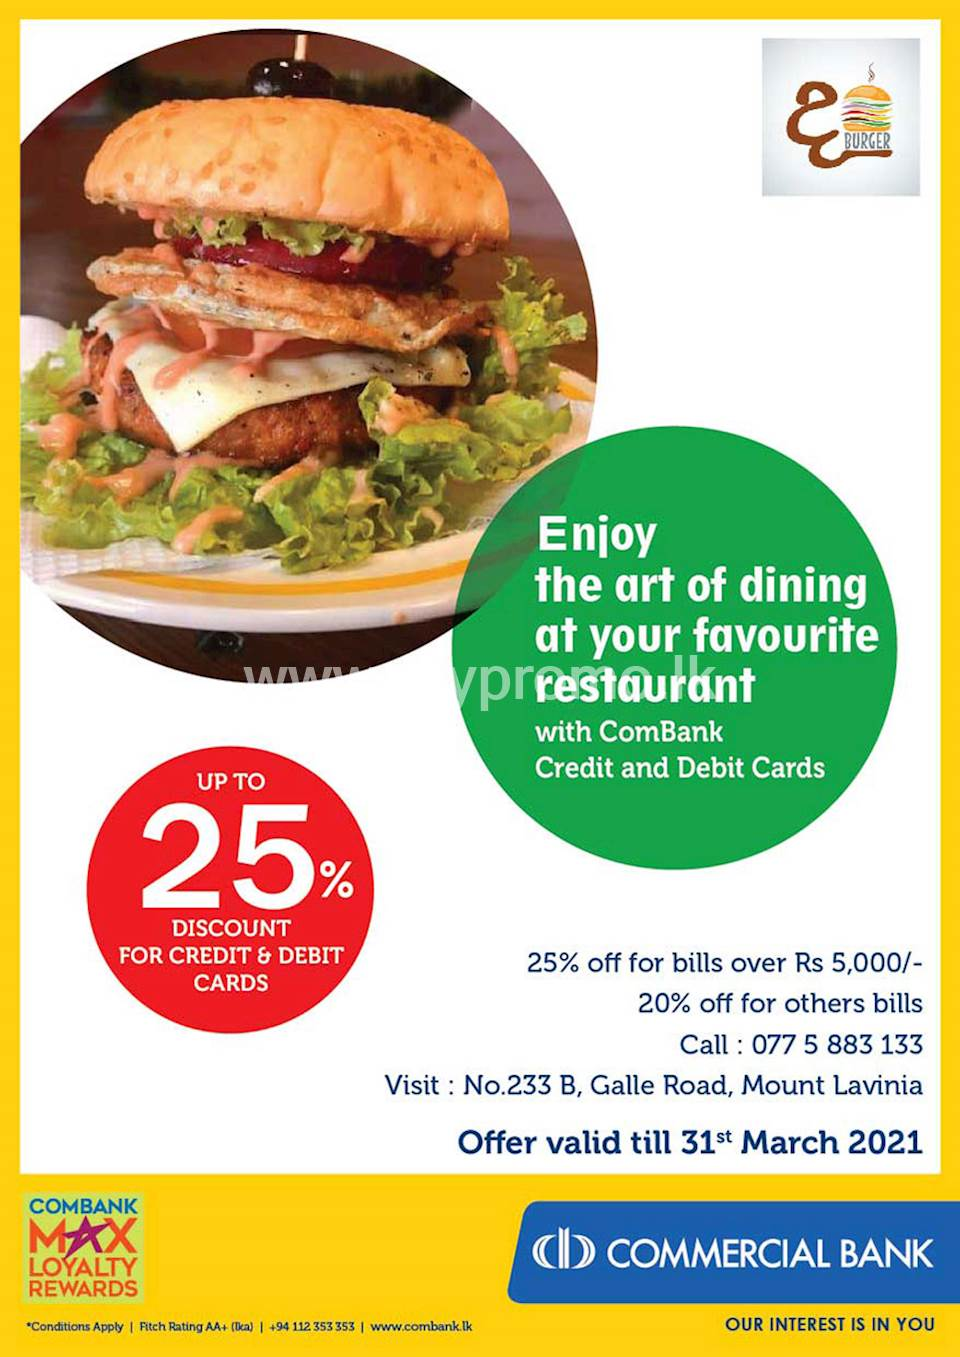 Enjoy up to 25% Discount for ComBank Credit and Debit Cards at the Burger